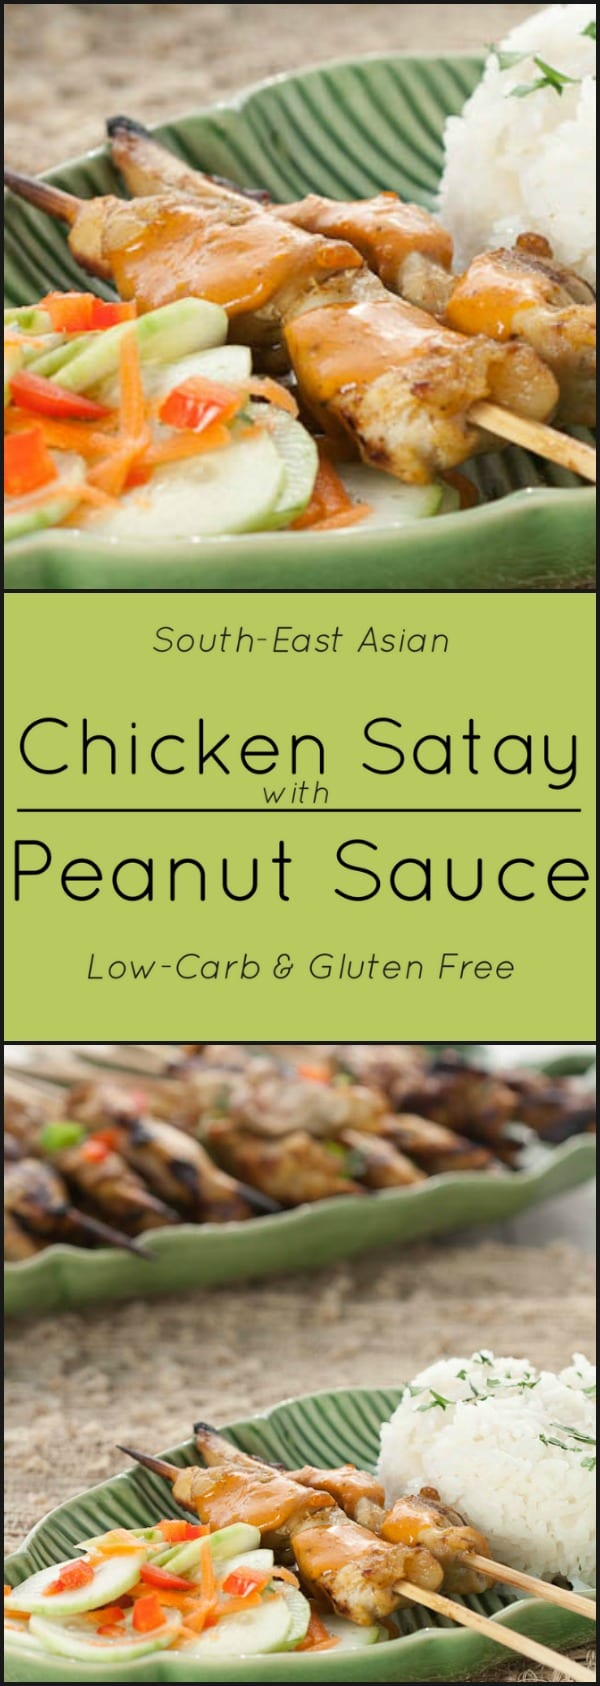 Chicken Satay with Peanut Sauce.